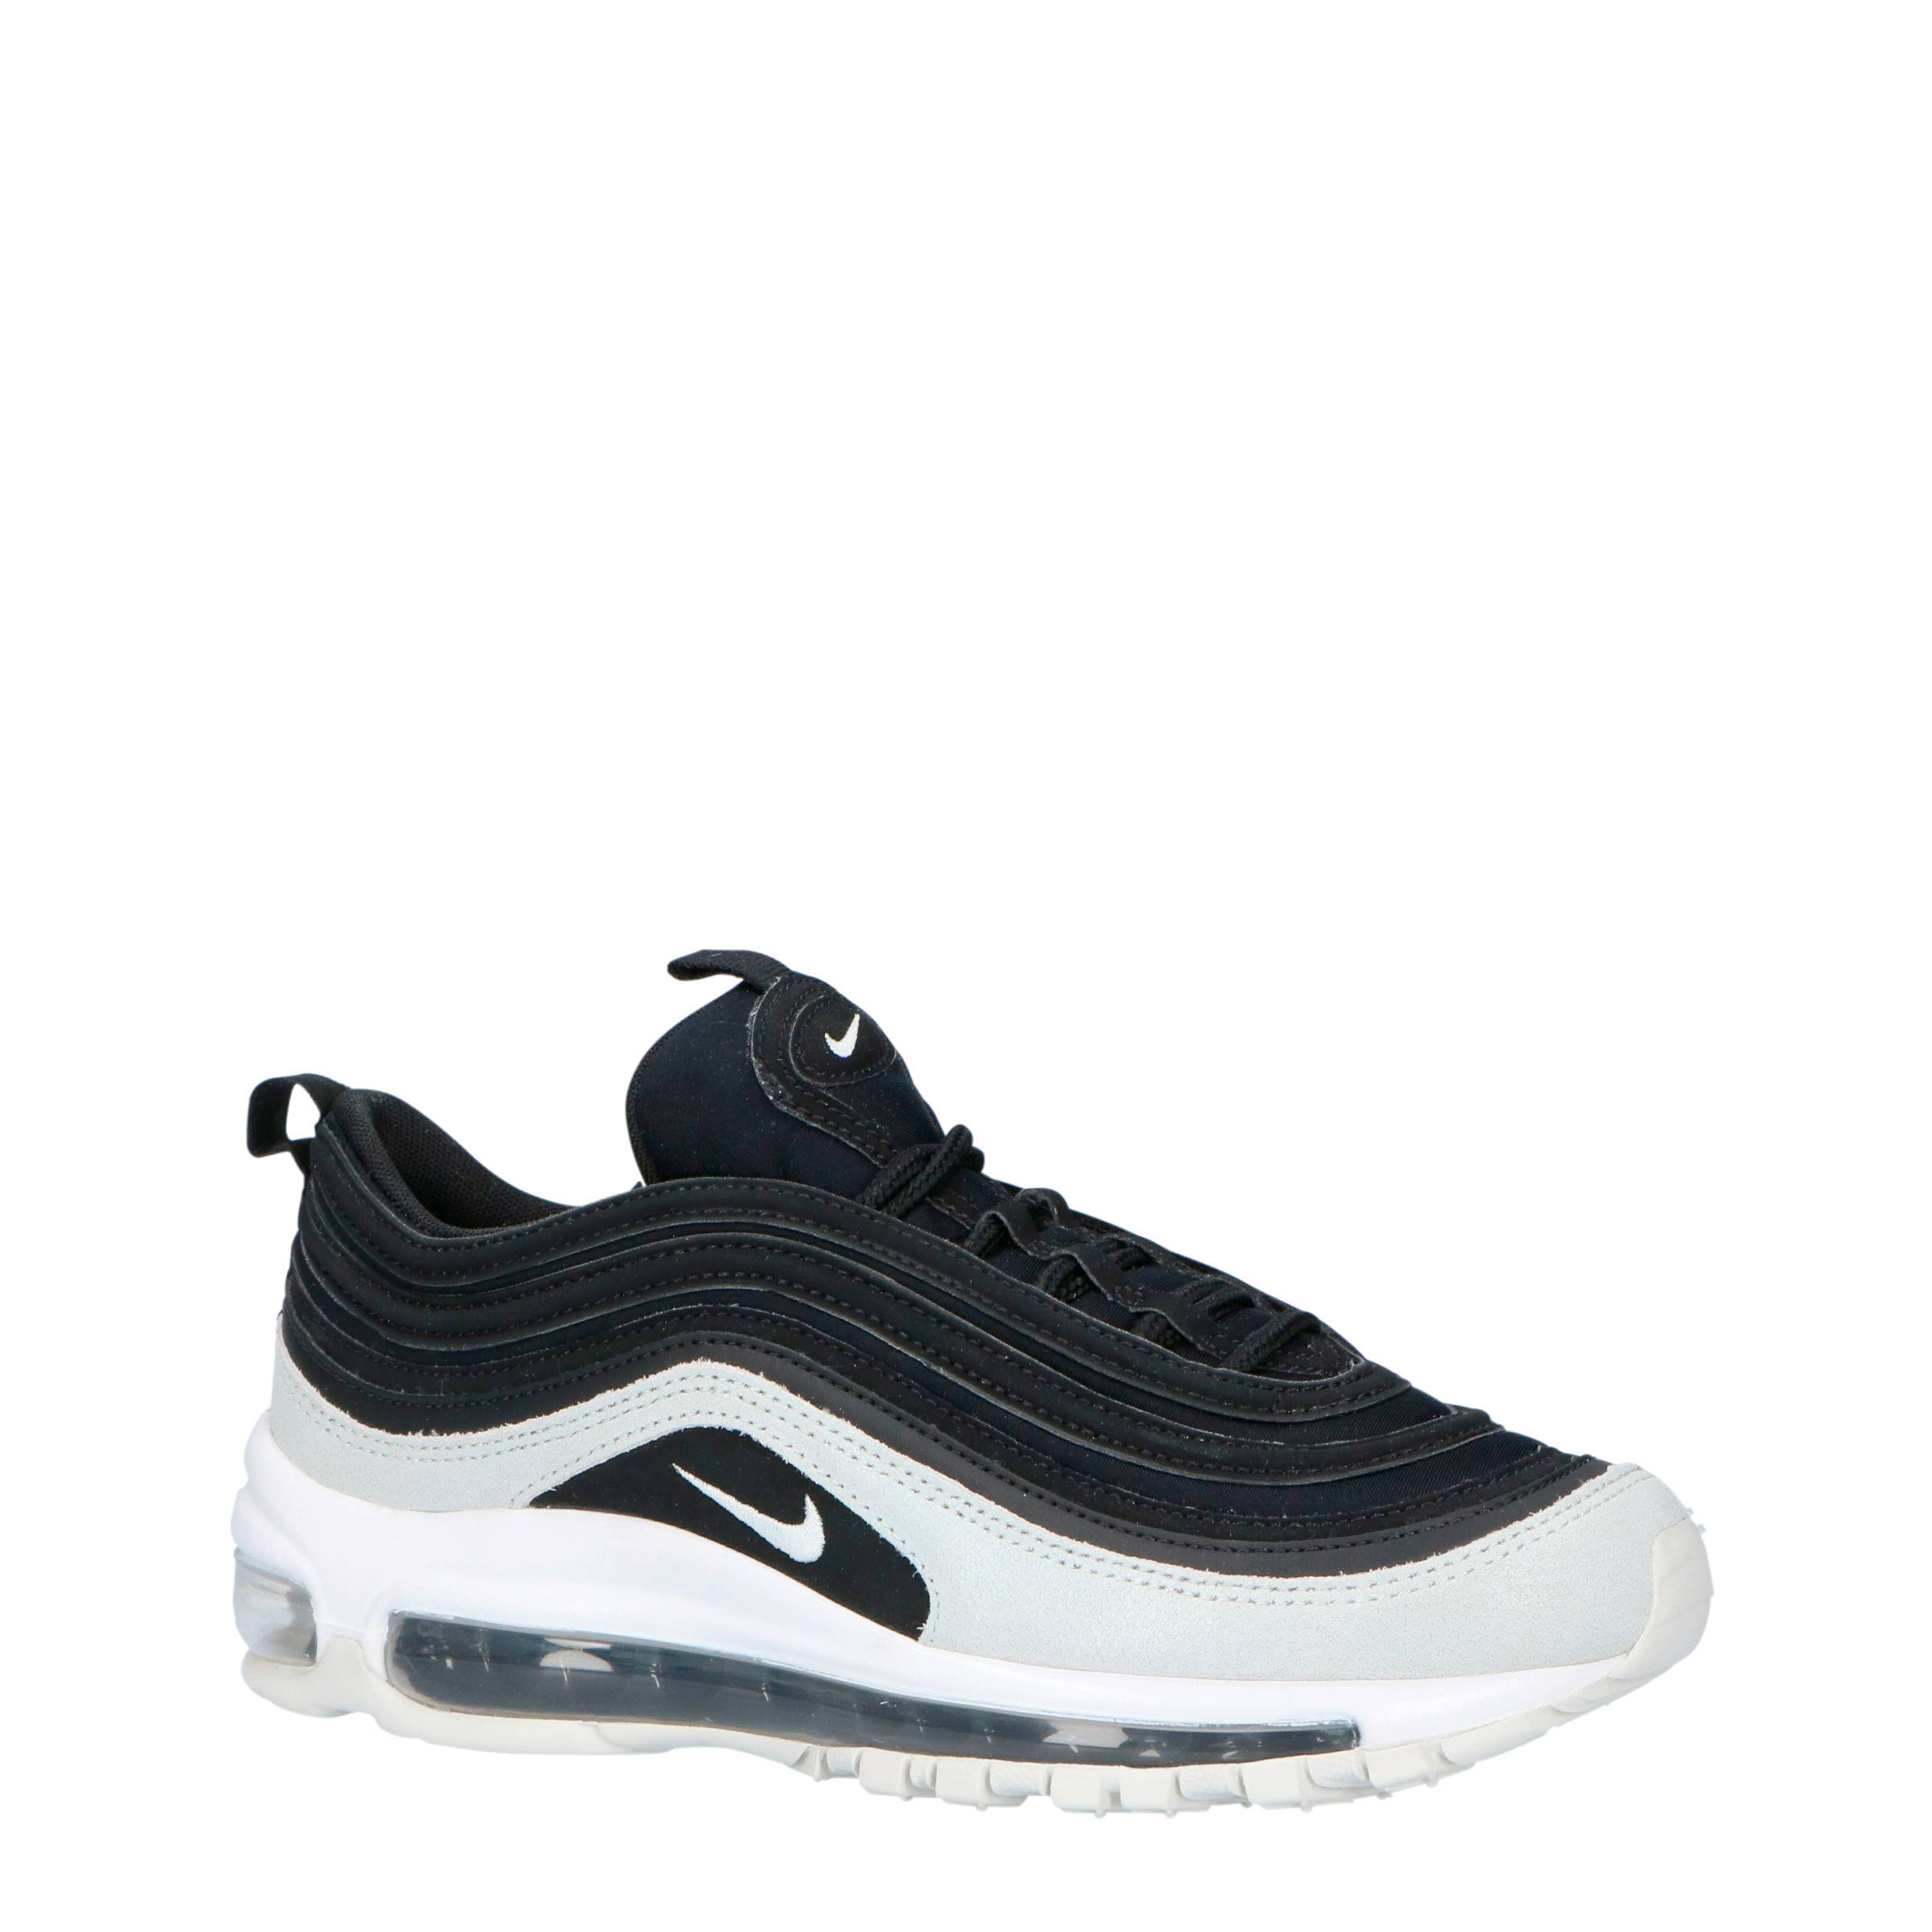 info for c54e8 2ab02 nike-air-max-97-prm-sneakers-zwart-0887225411848.jpg